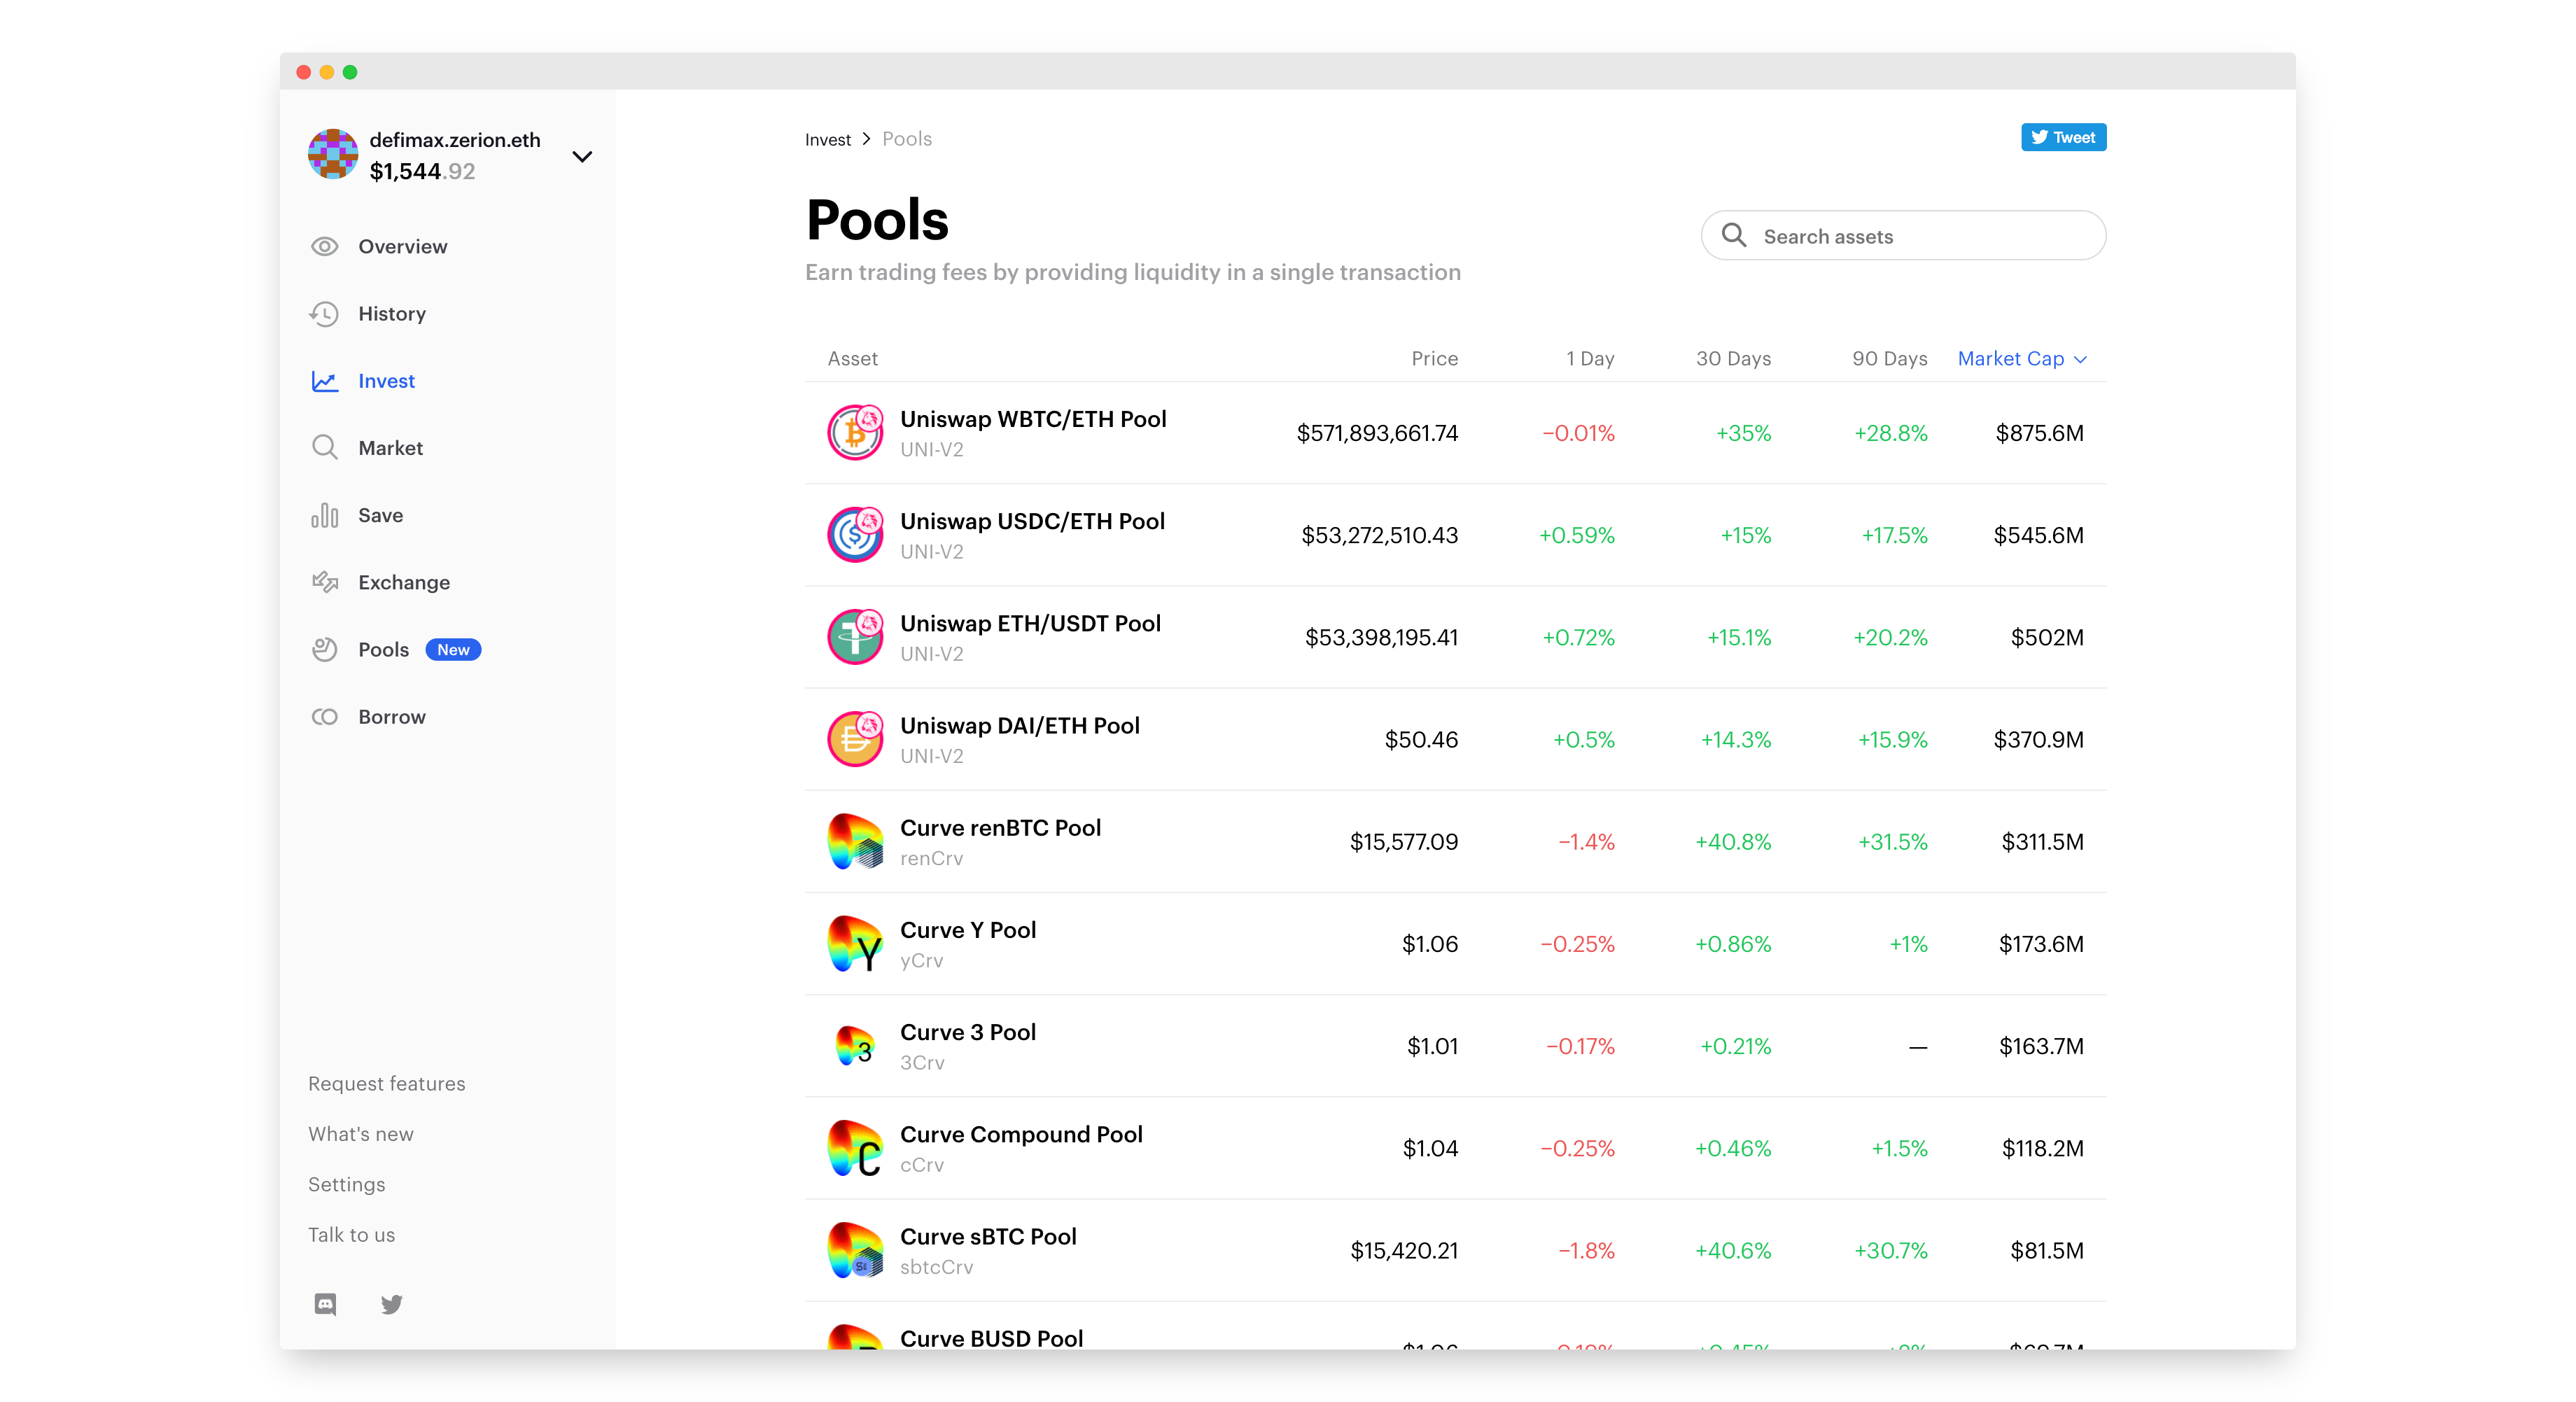 How to invest in a liquidity pool